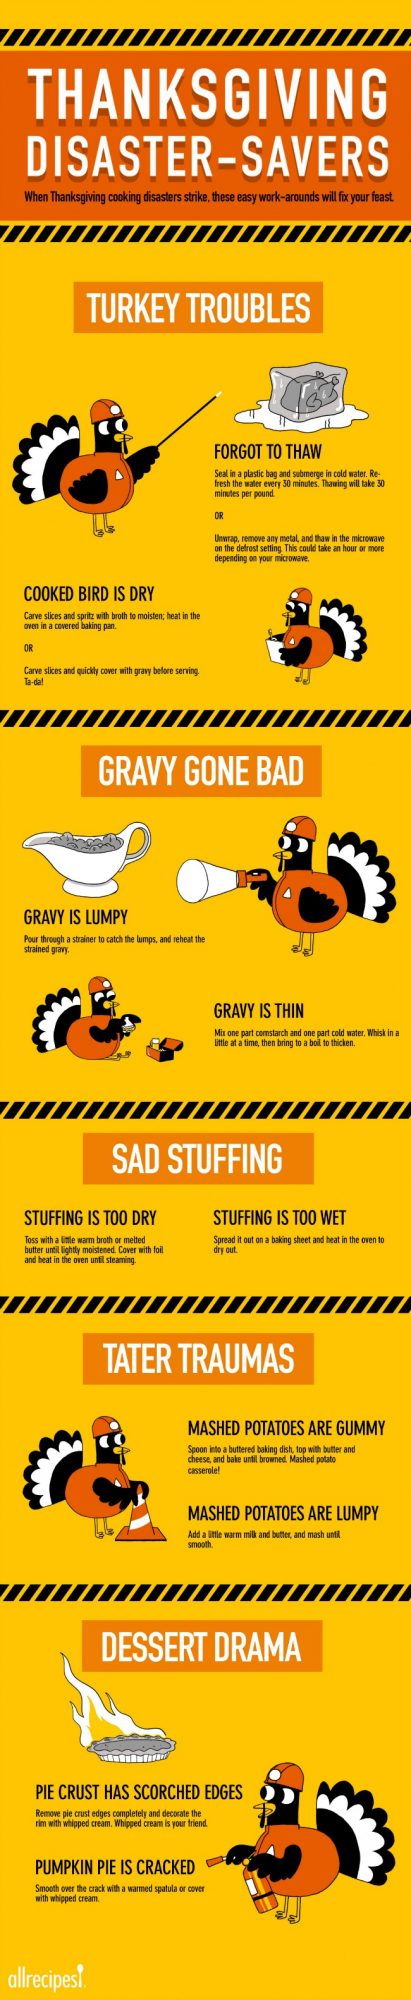 Thanksgiving Disaster-Savers Infographic by Allrecipes